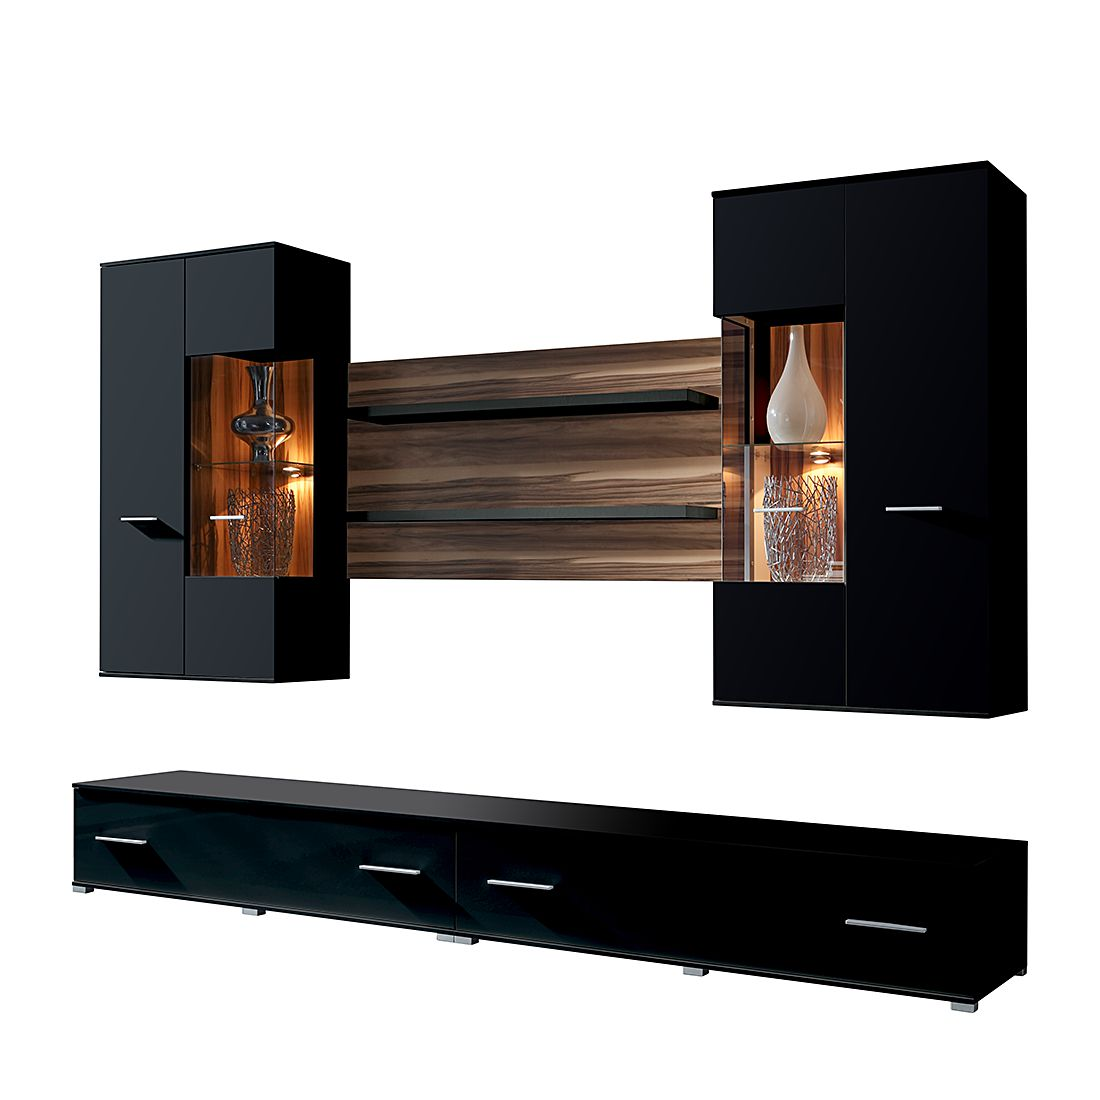 california archive seite 6 von 11. Black Bedroom Furniture Sets. Home Design Ideas